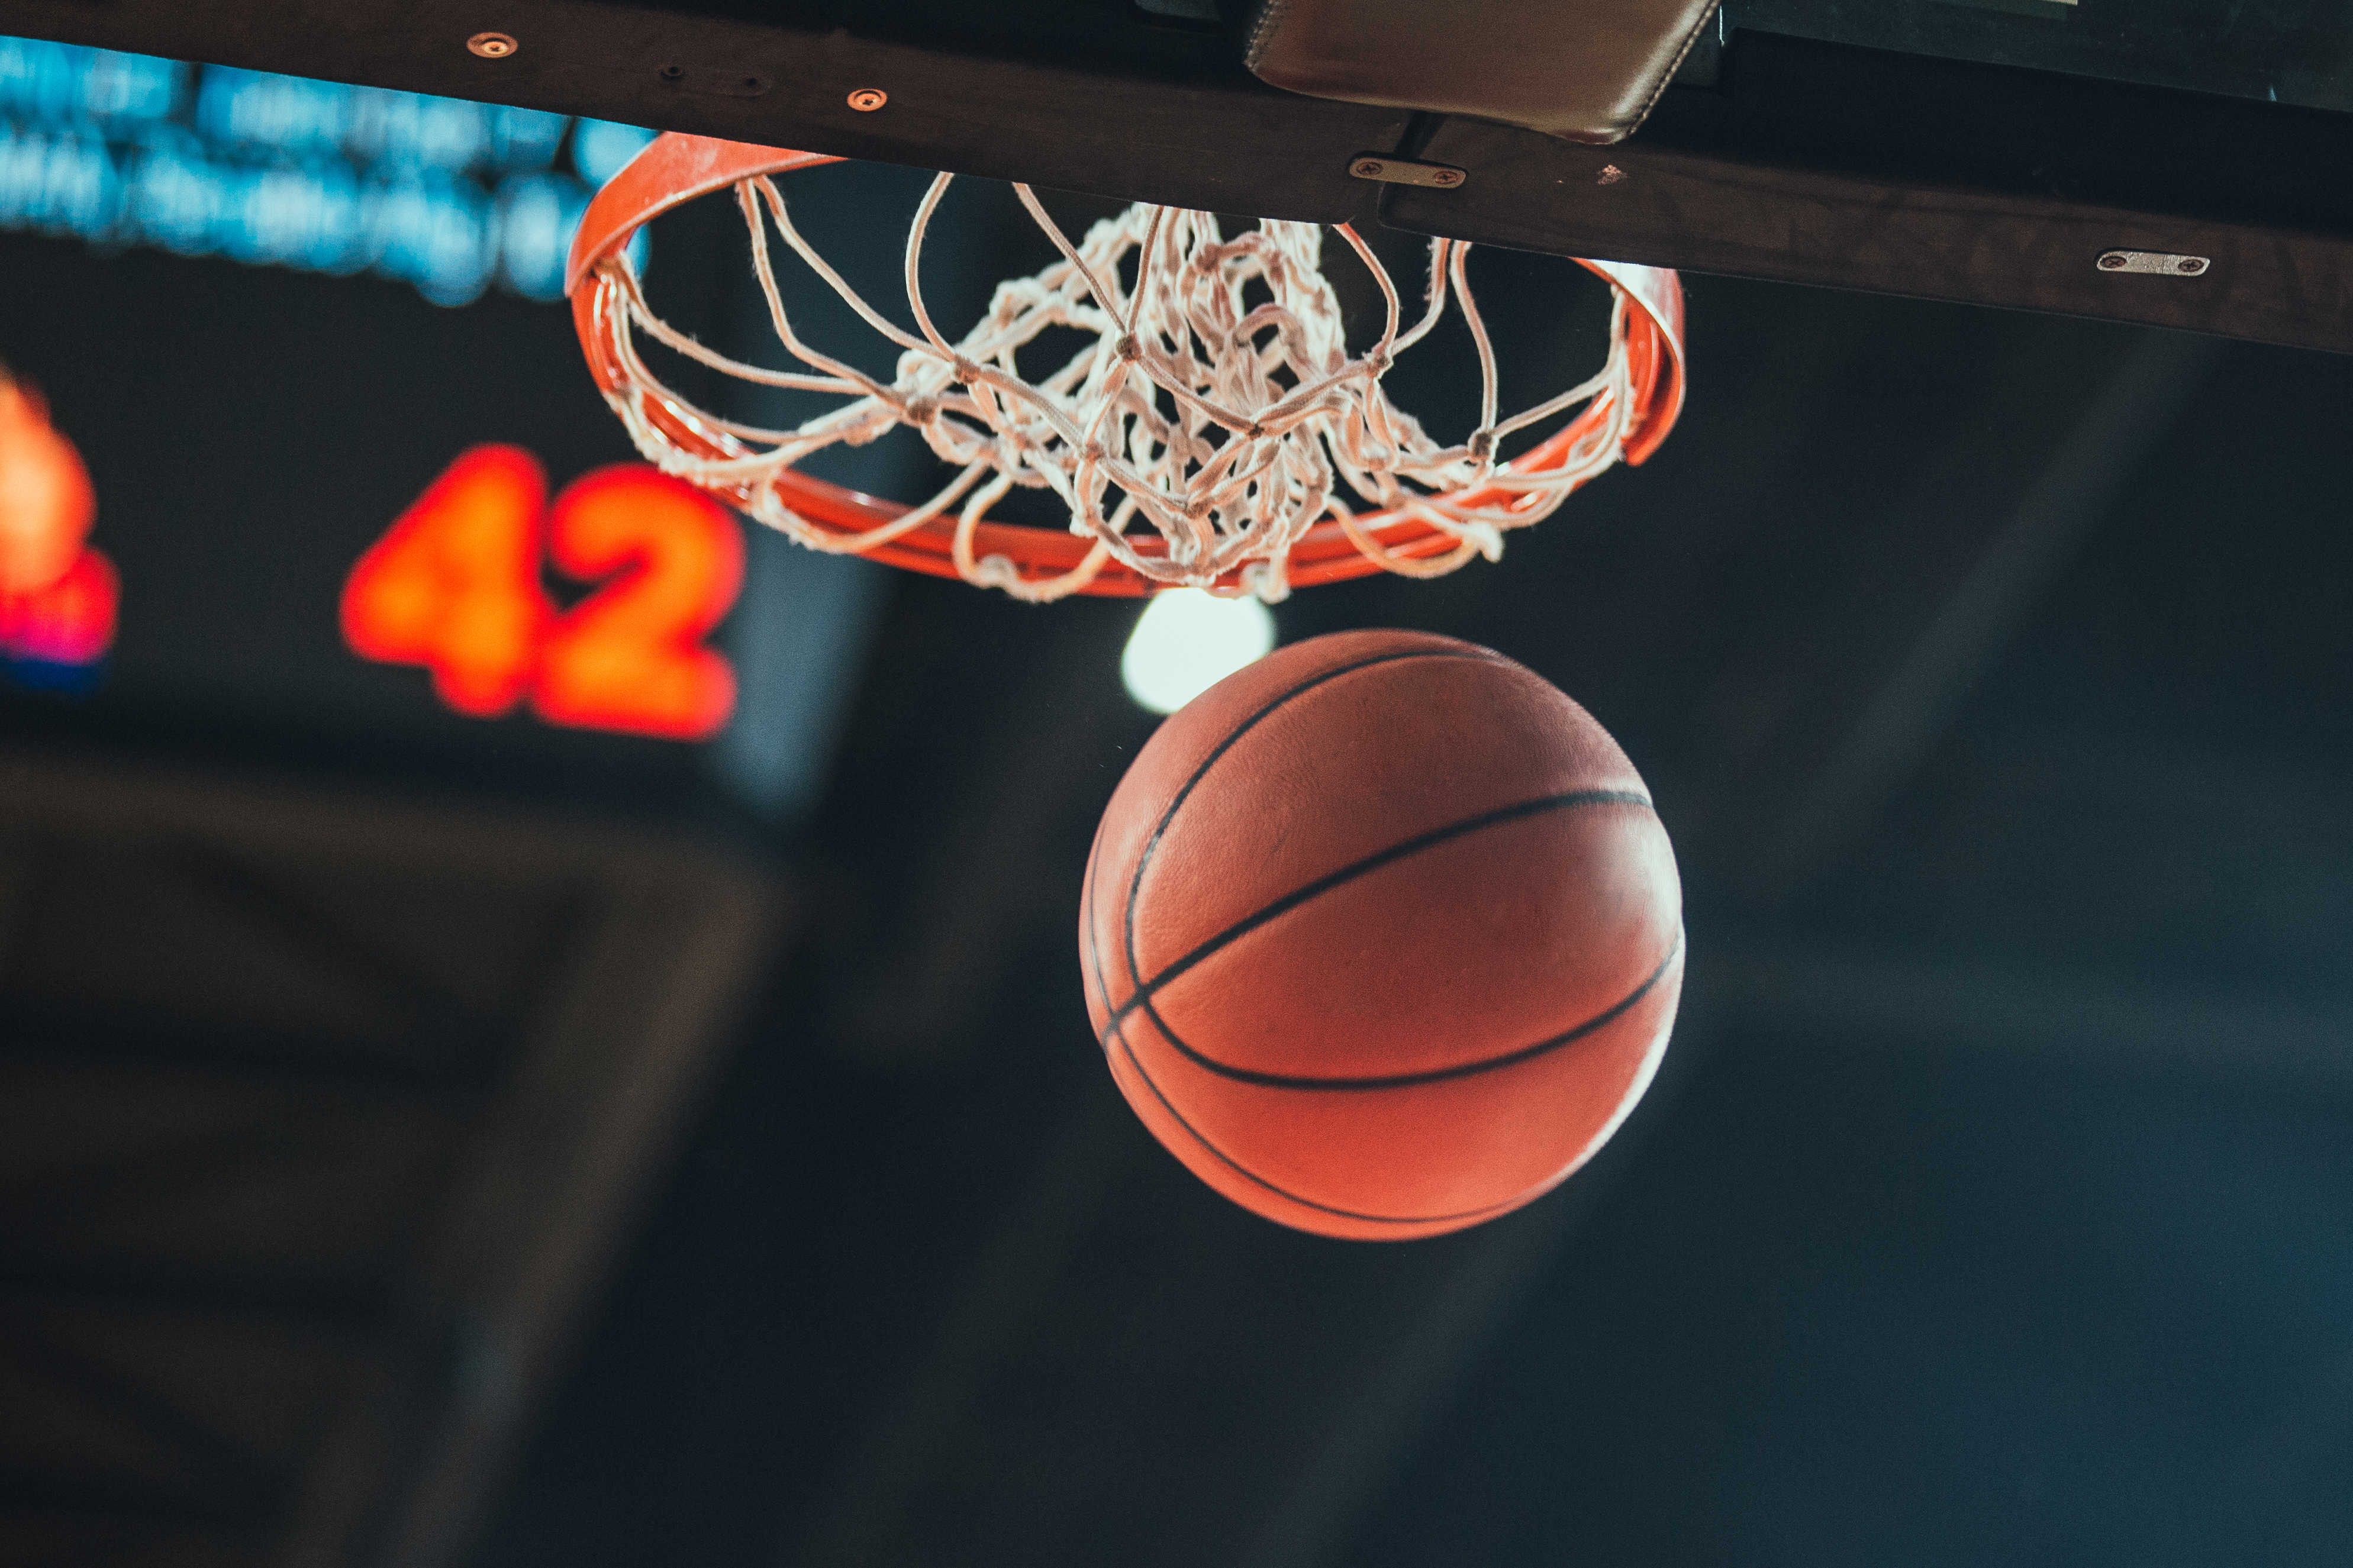 A basketball swooshes through a hoop at a basketball game